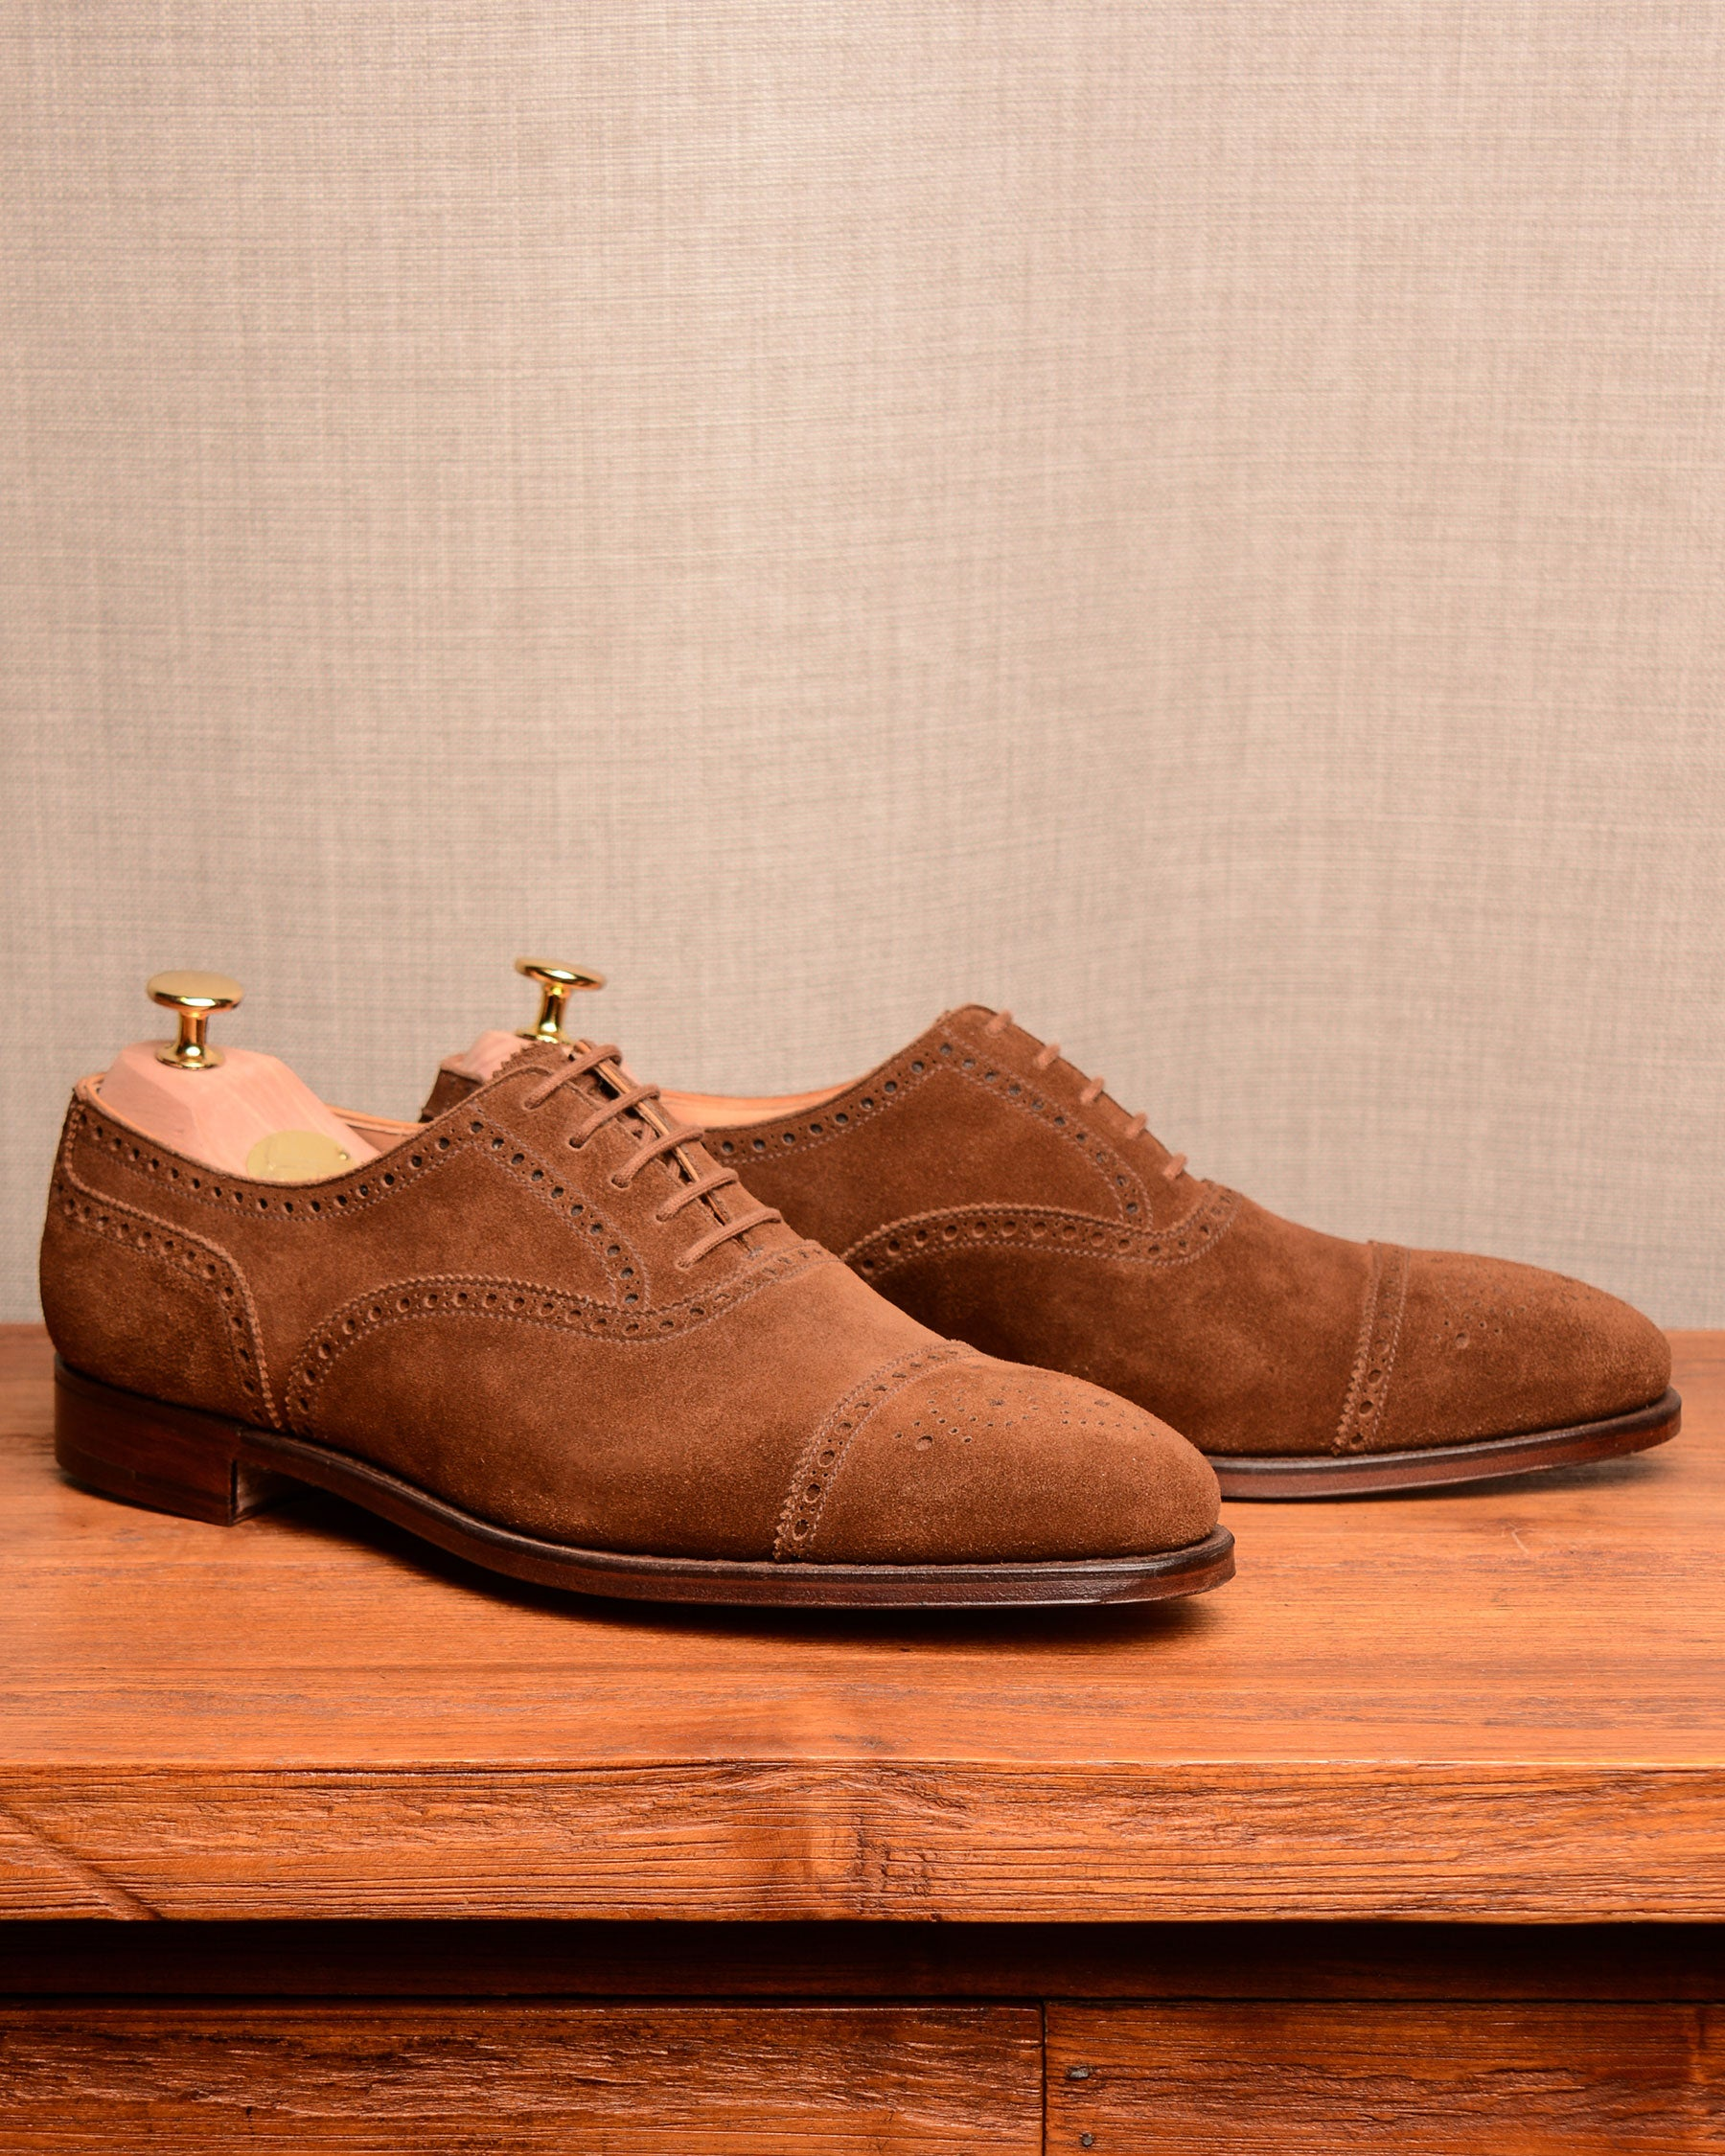 Crockett & Jones Westfield - Tobacco Suede